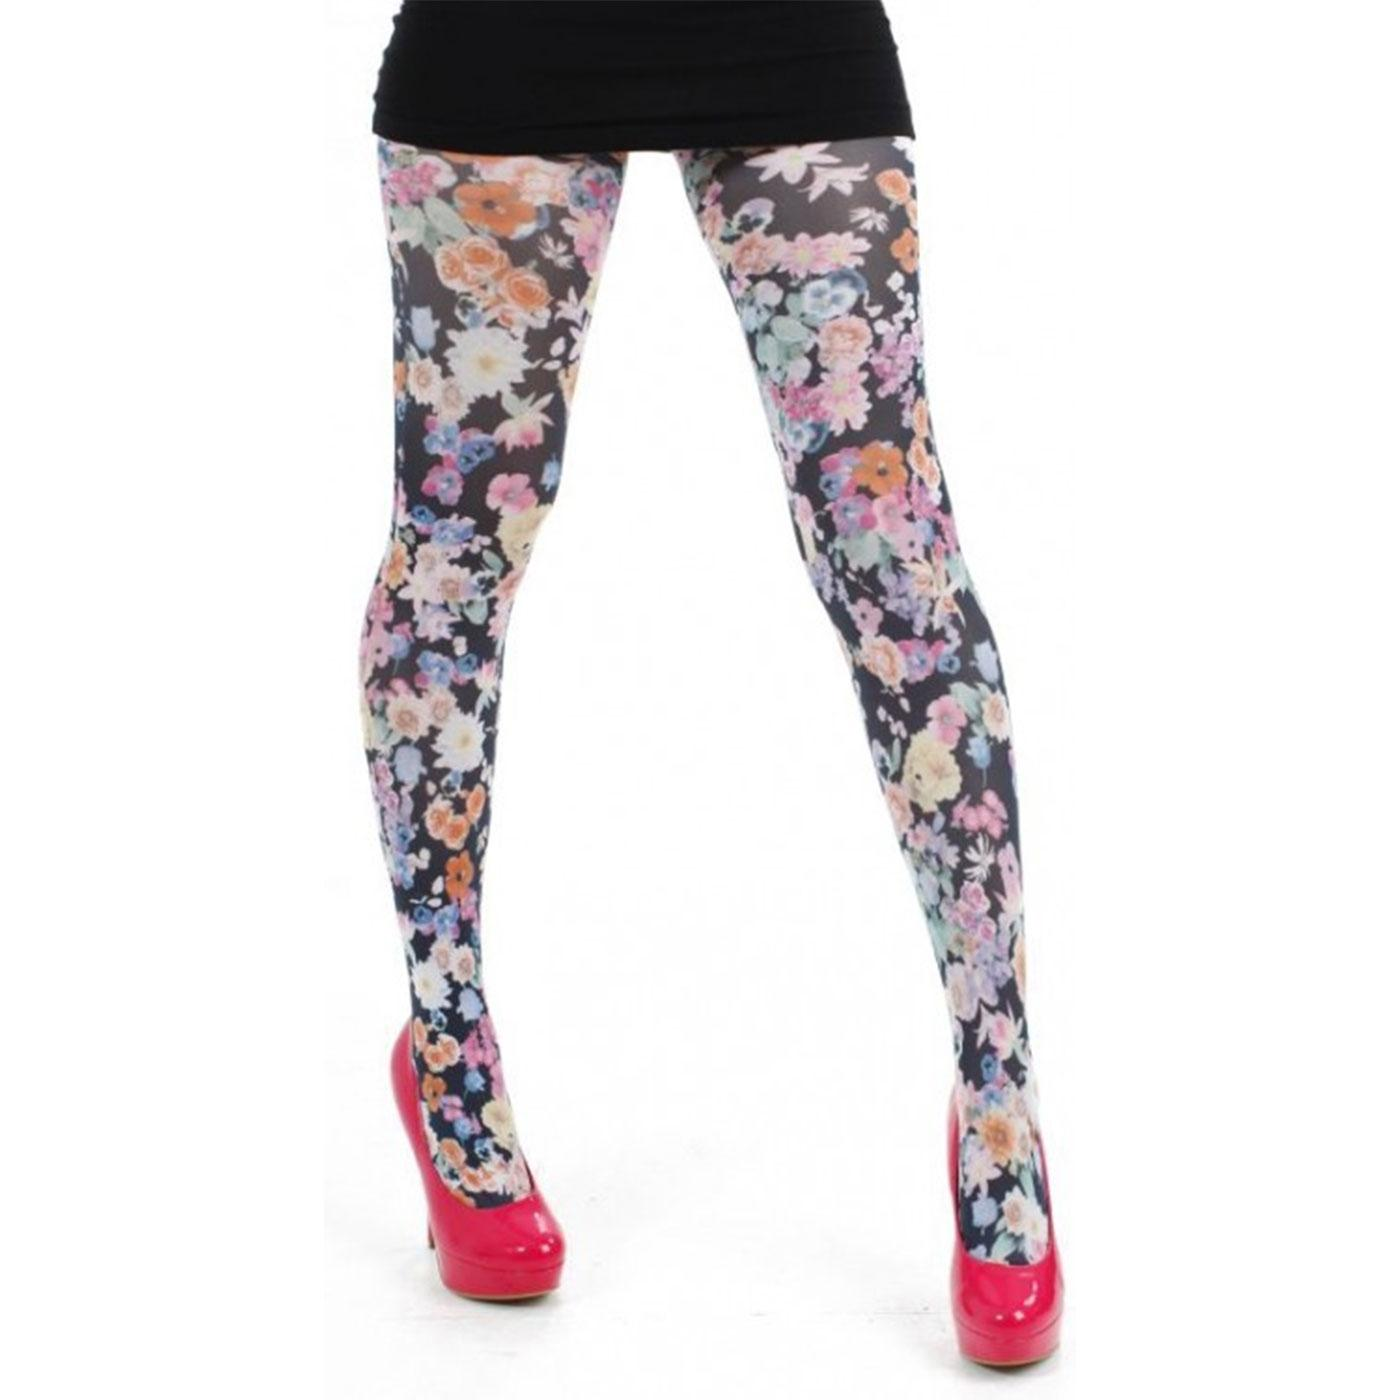 + Midnight Garden PAMELA MANN Floral Print Tights